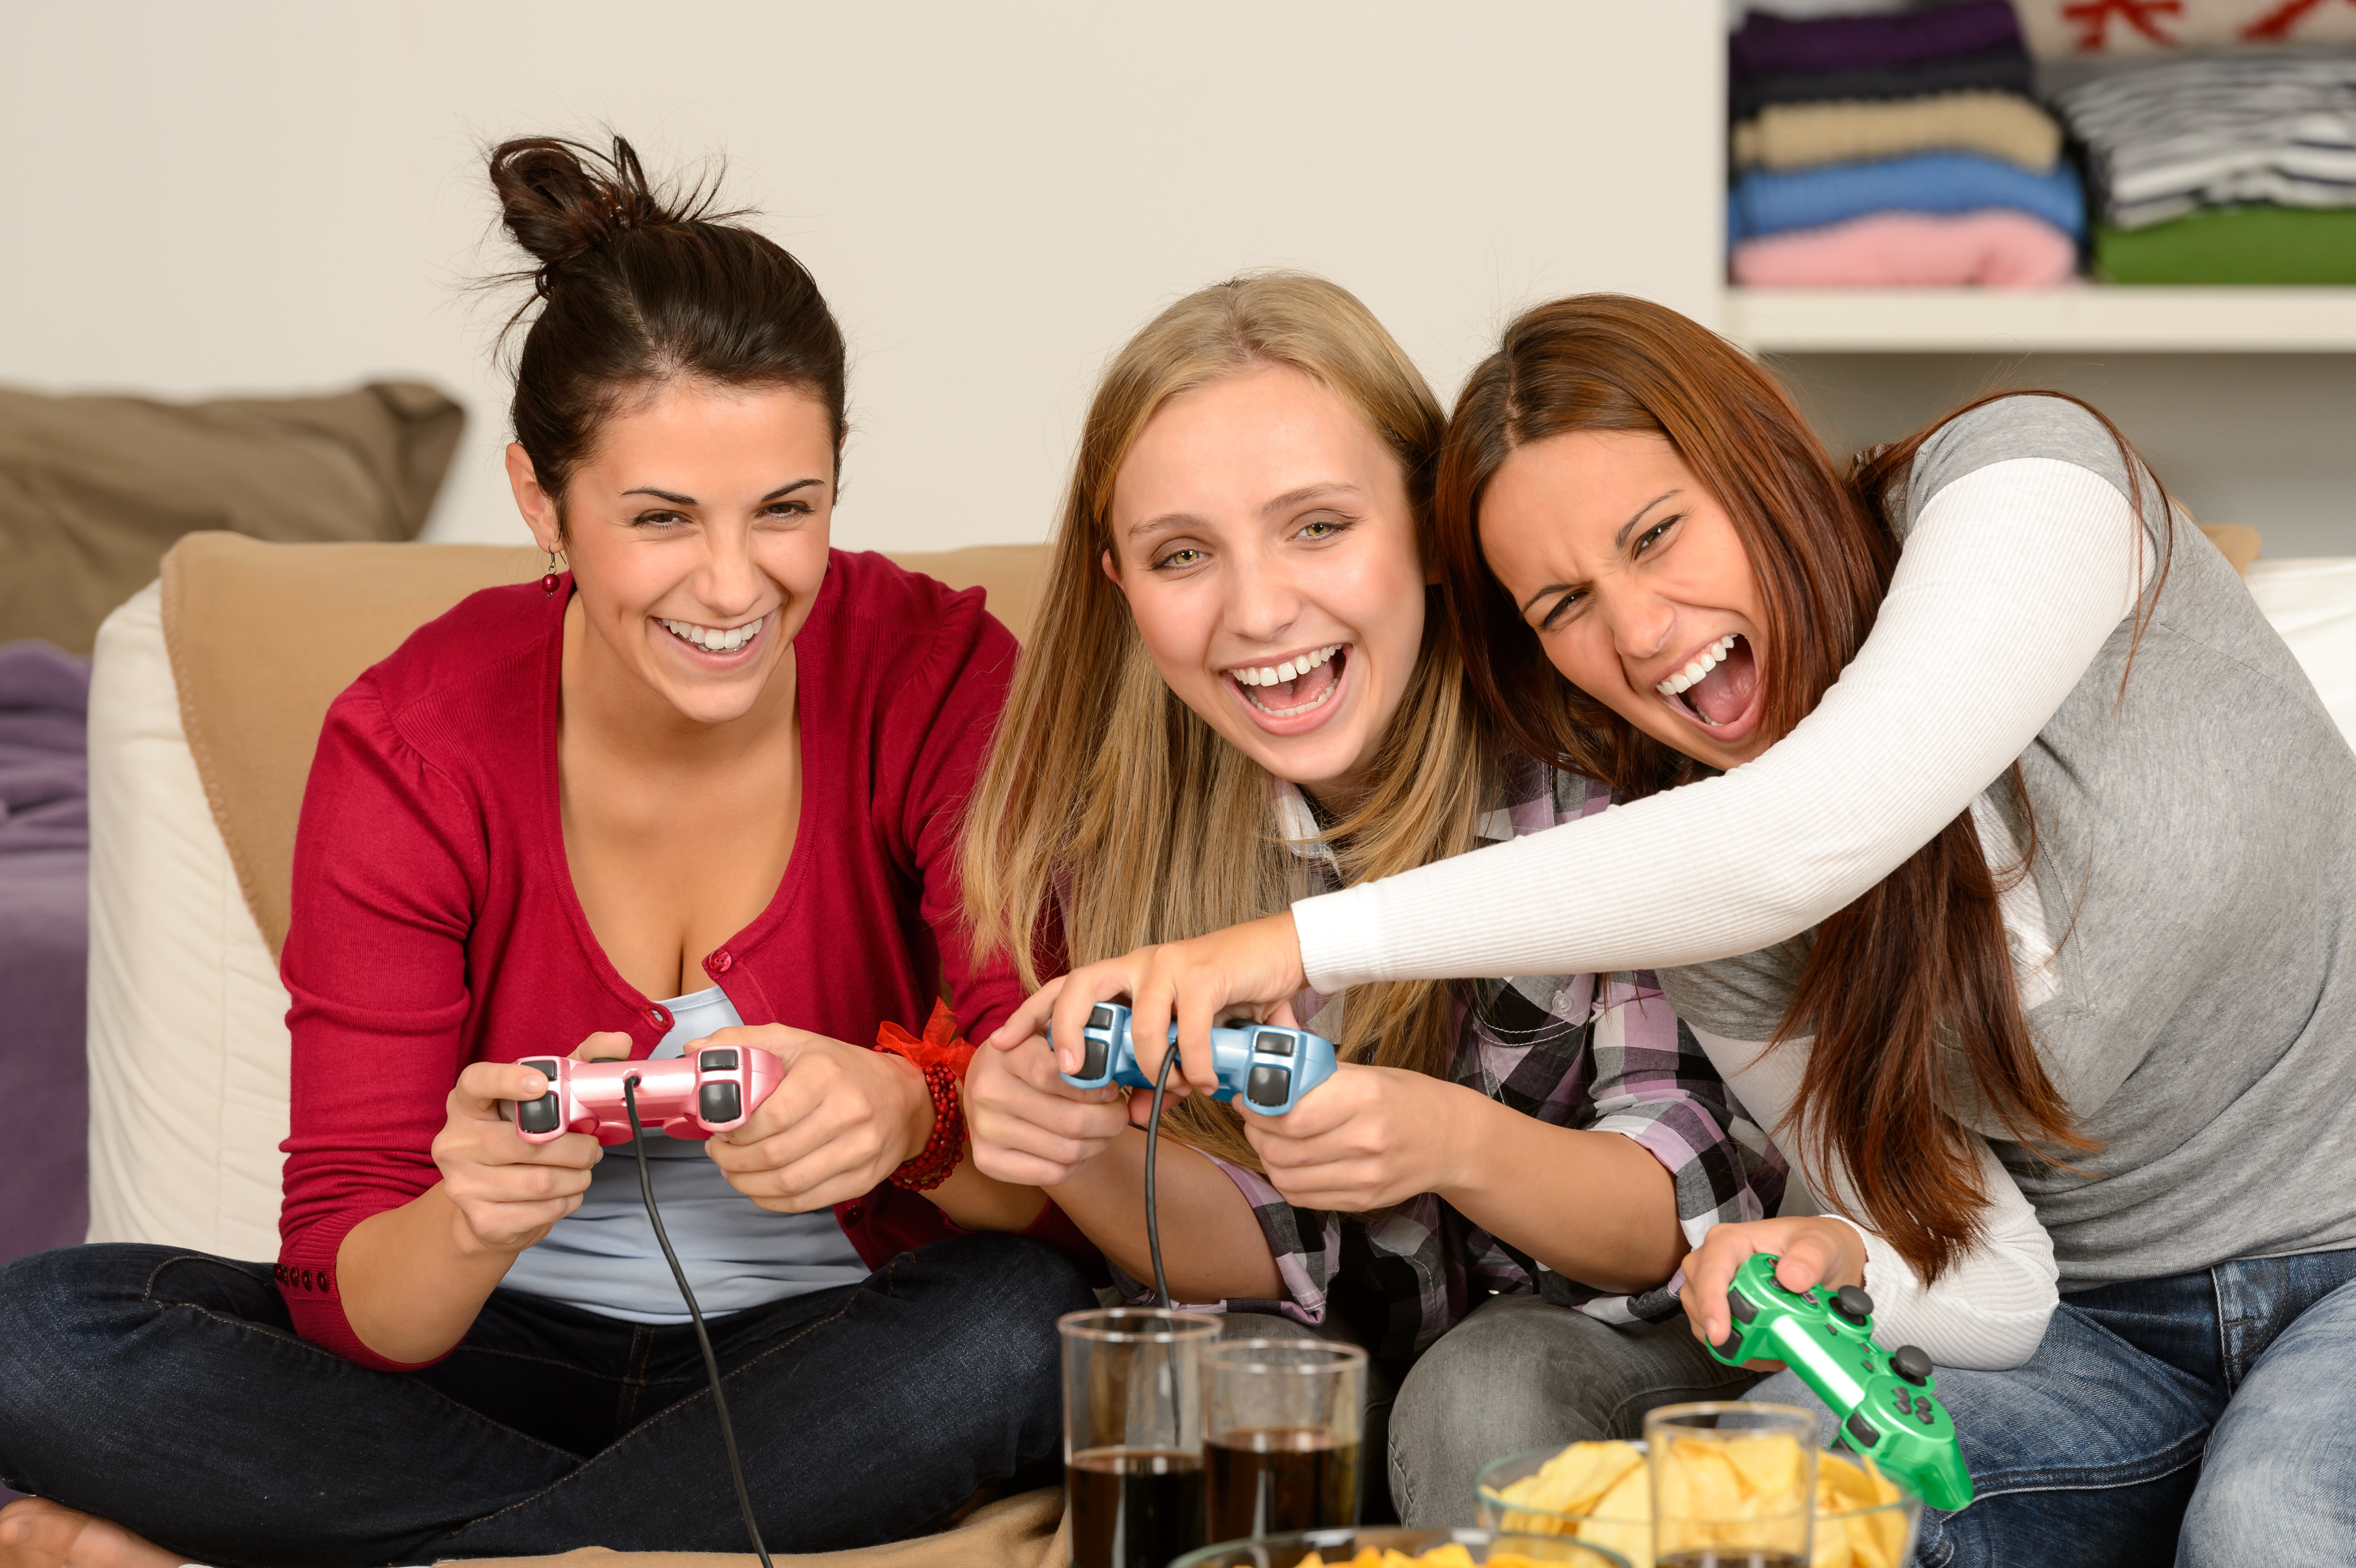 New Survey Suggests More Women Than Men Own Games Consoles UNILAD Women playing video games31861